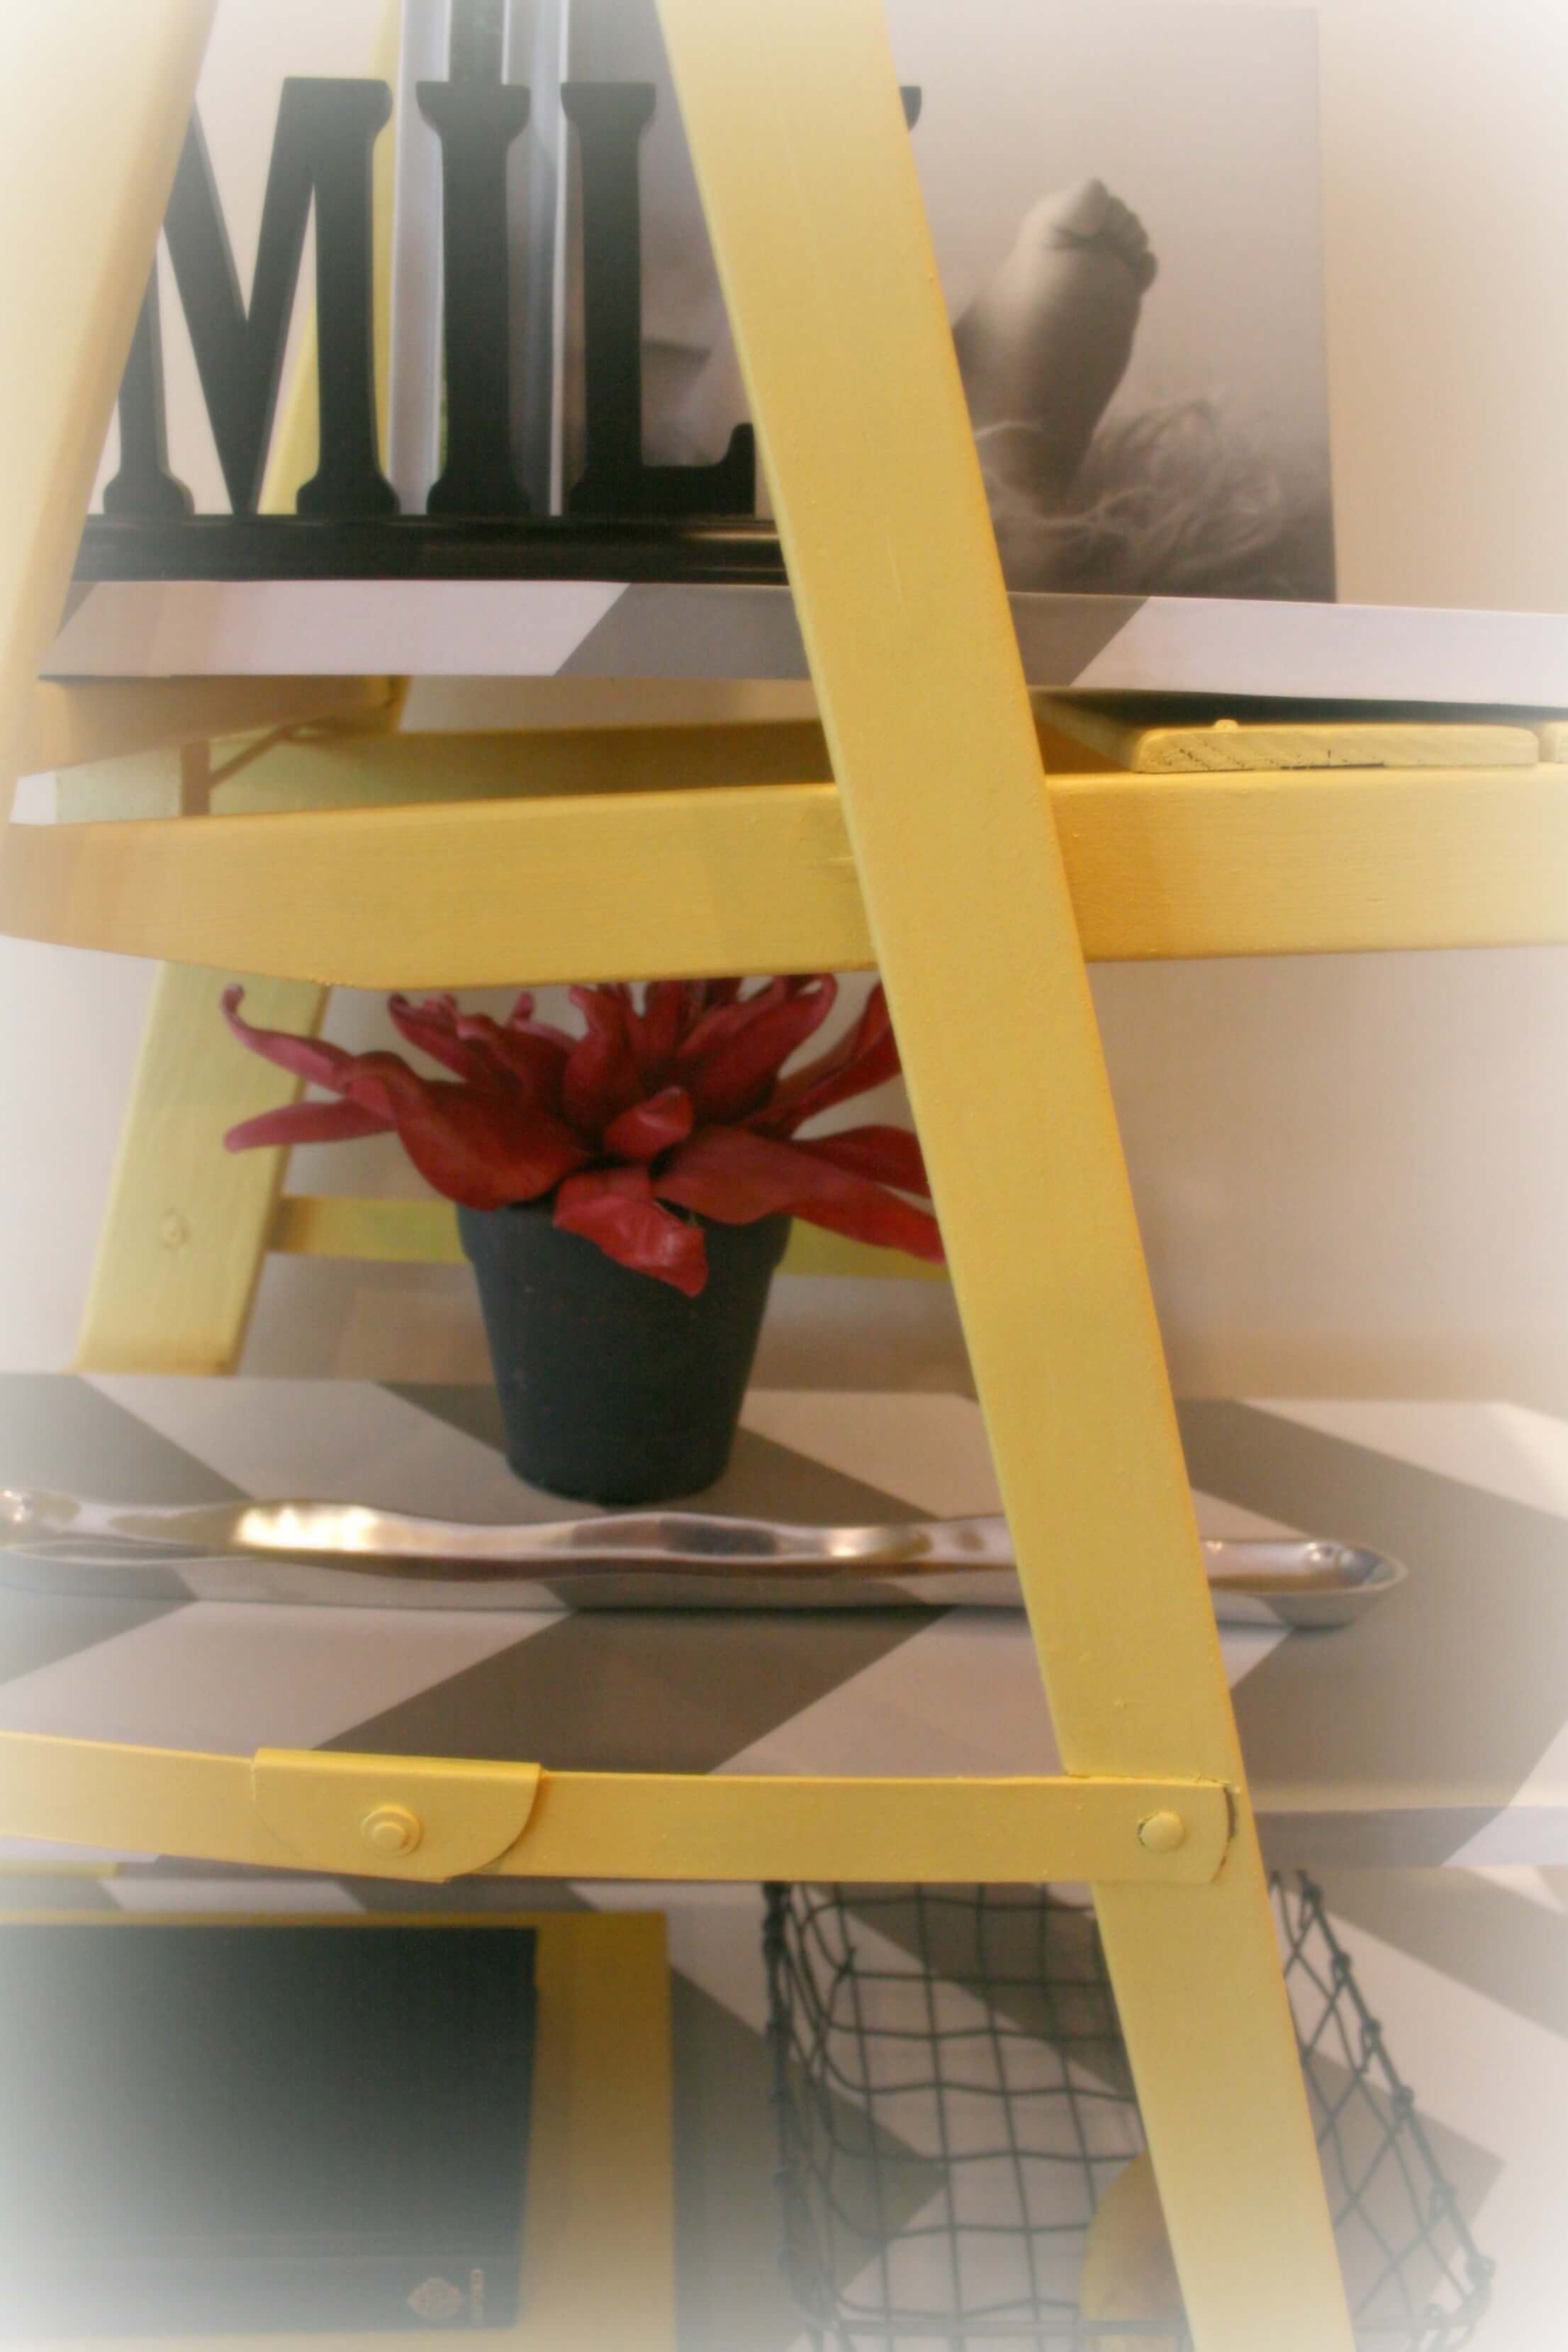 Another close-up view of this homemade vintage shelving unit